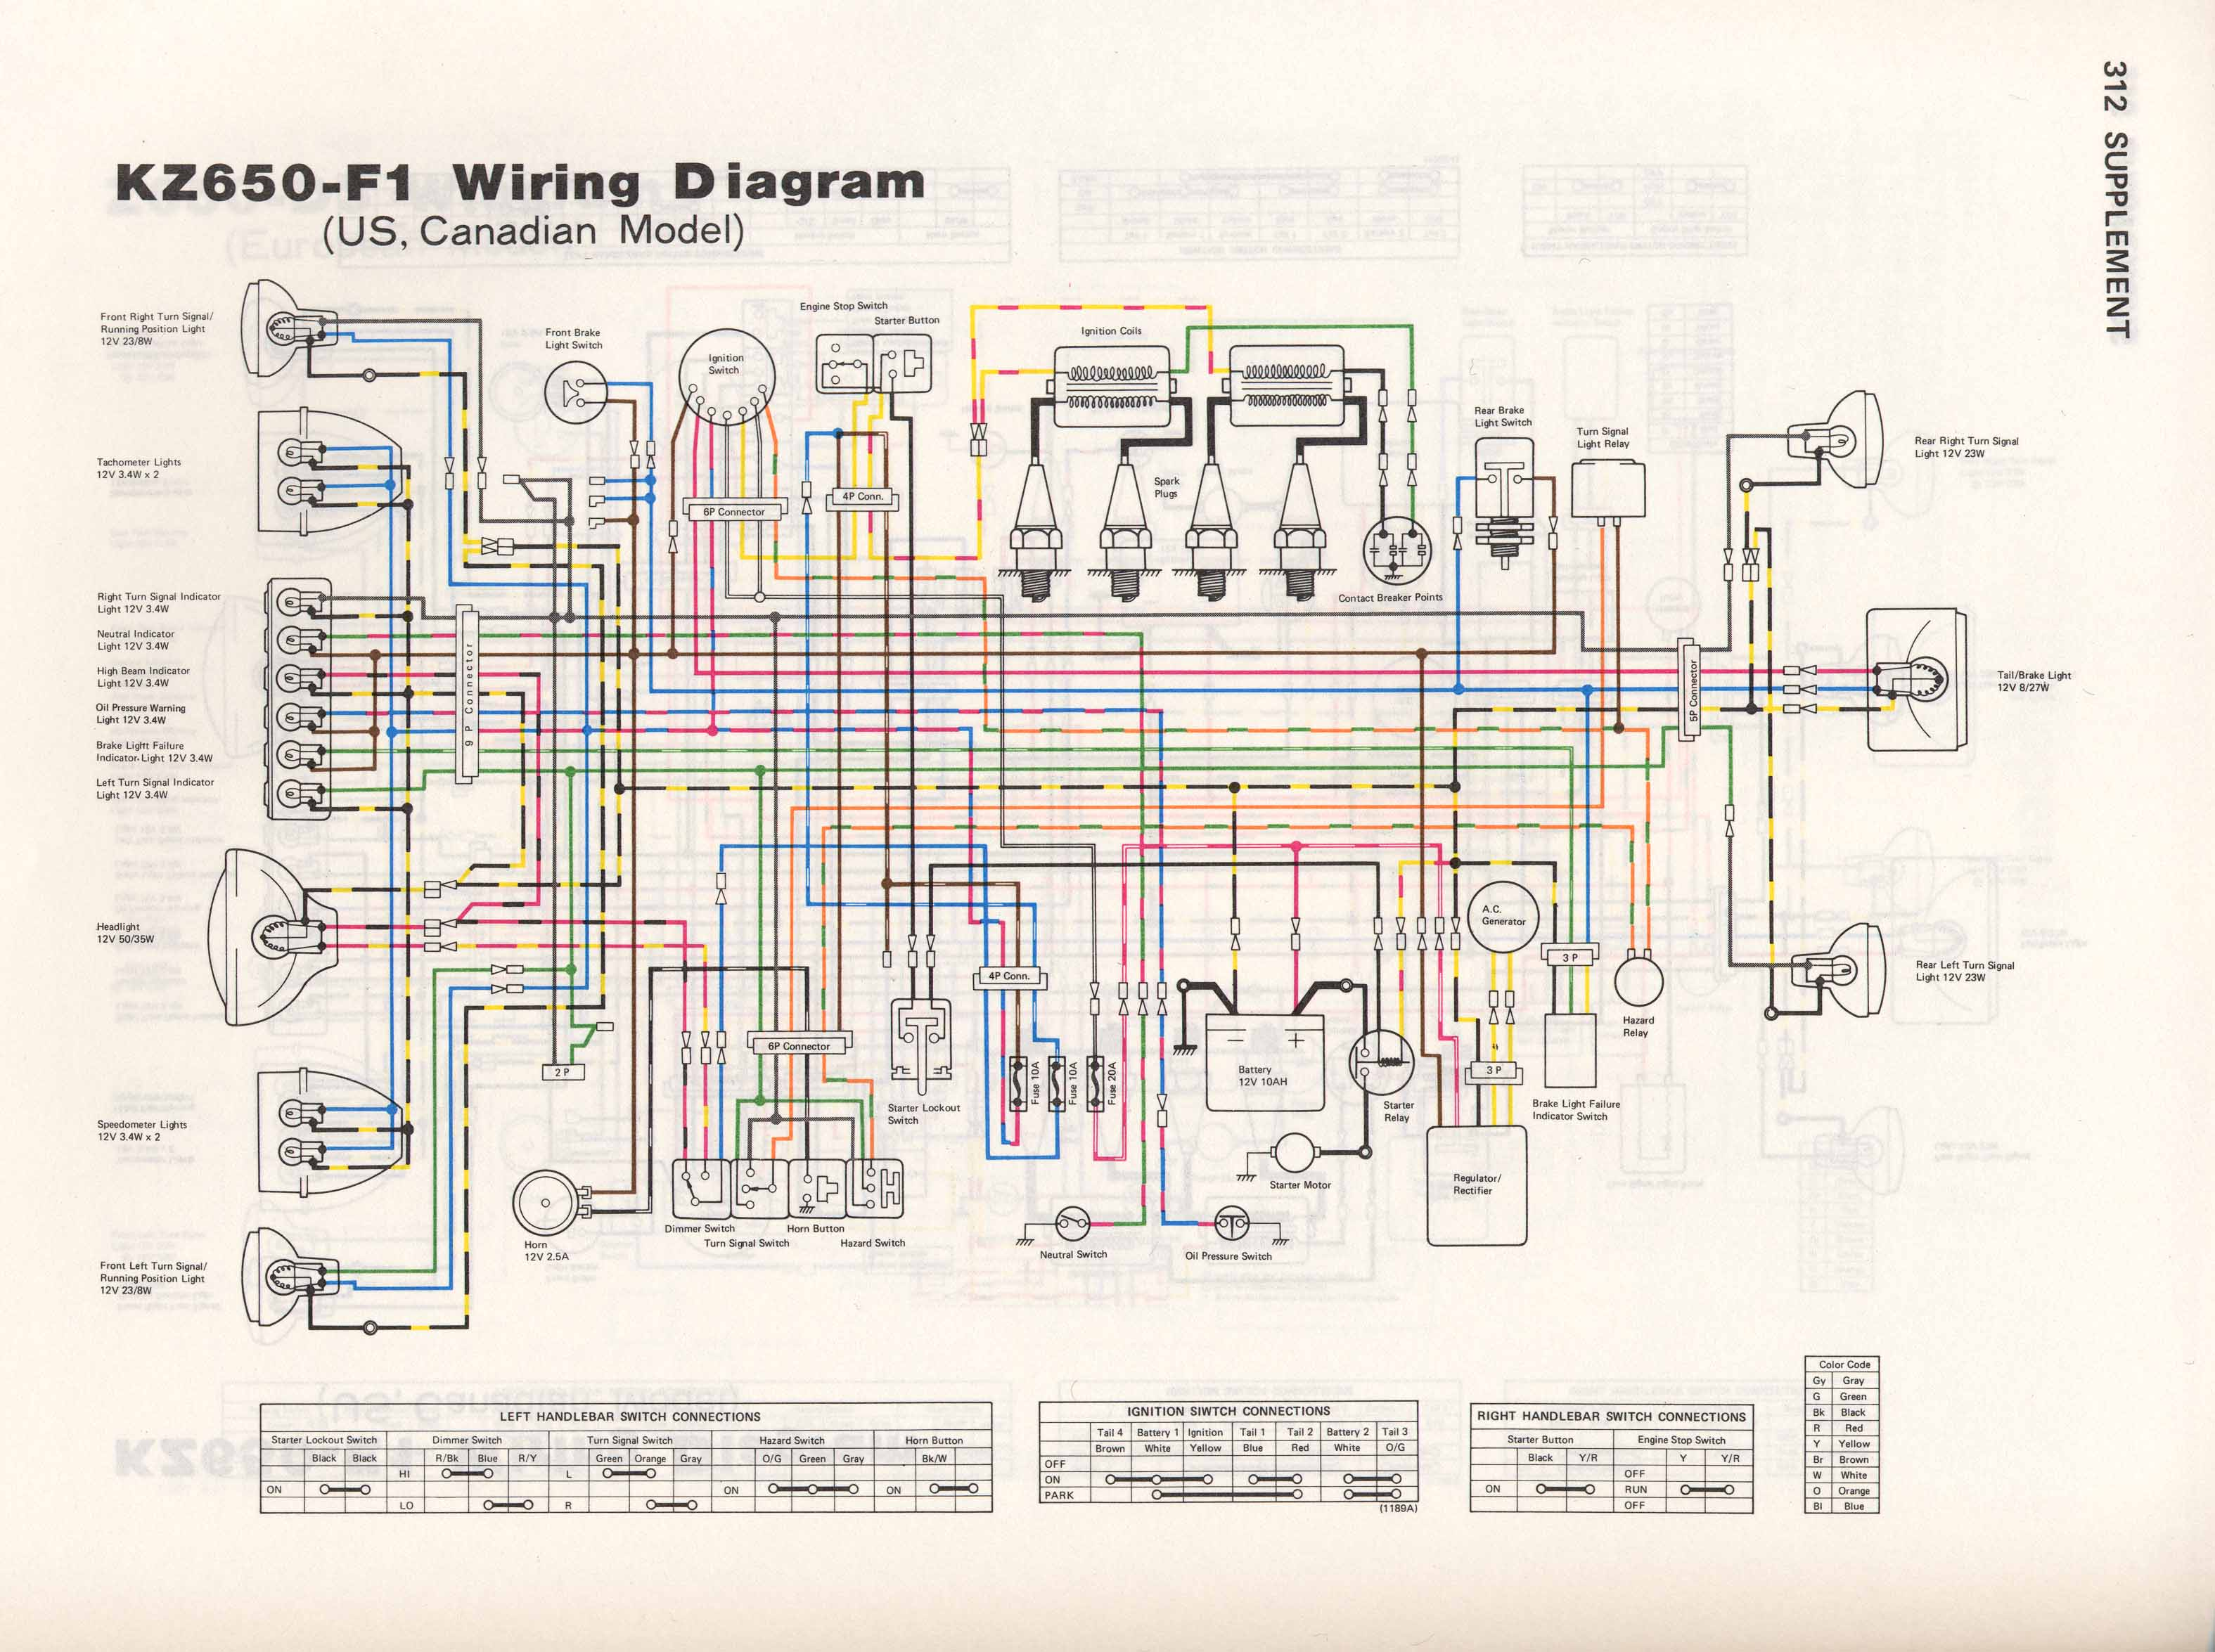 KZ650 F1 kz650 info wiring diagrams invader wiring diagram at readyjetset.co